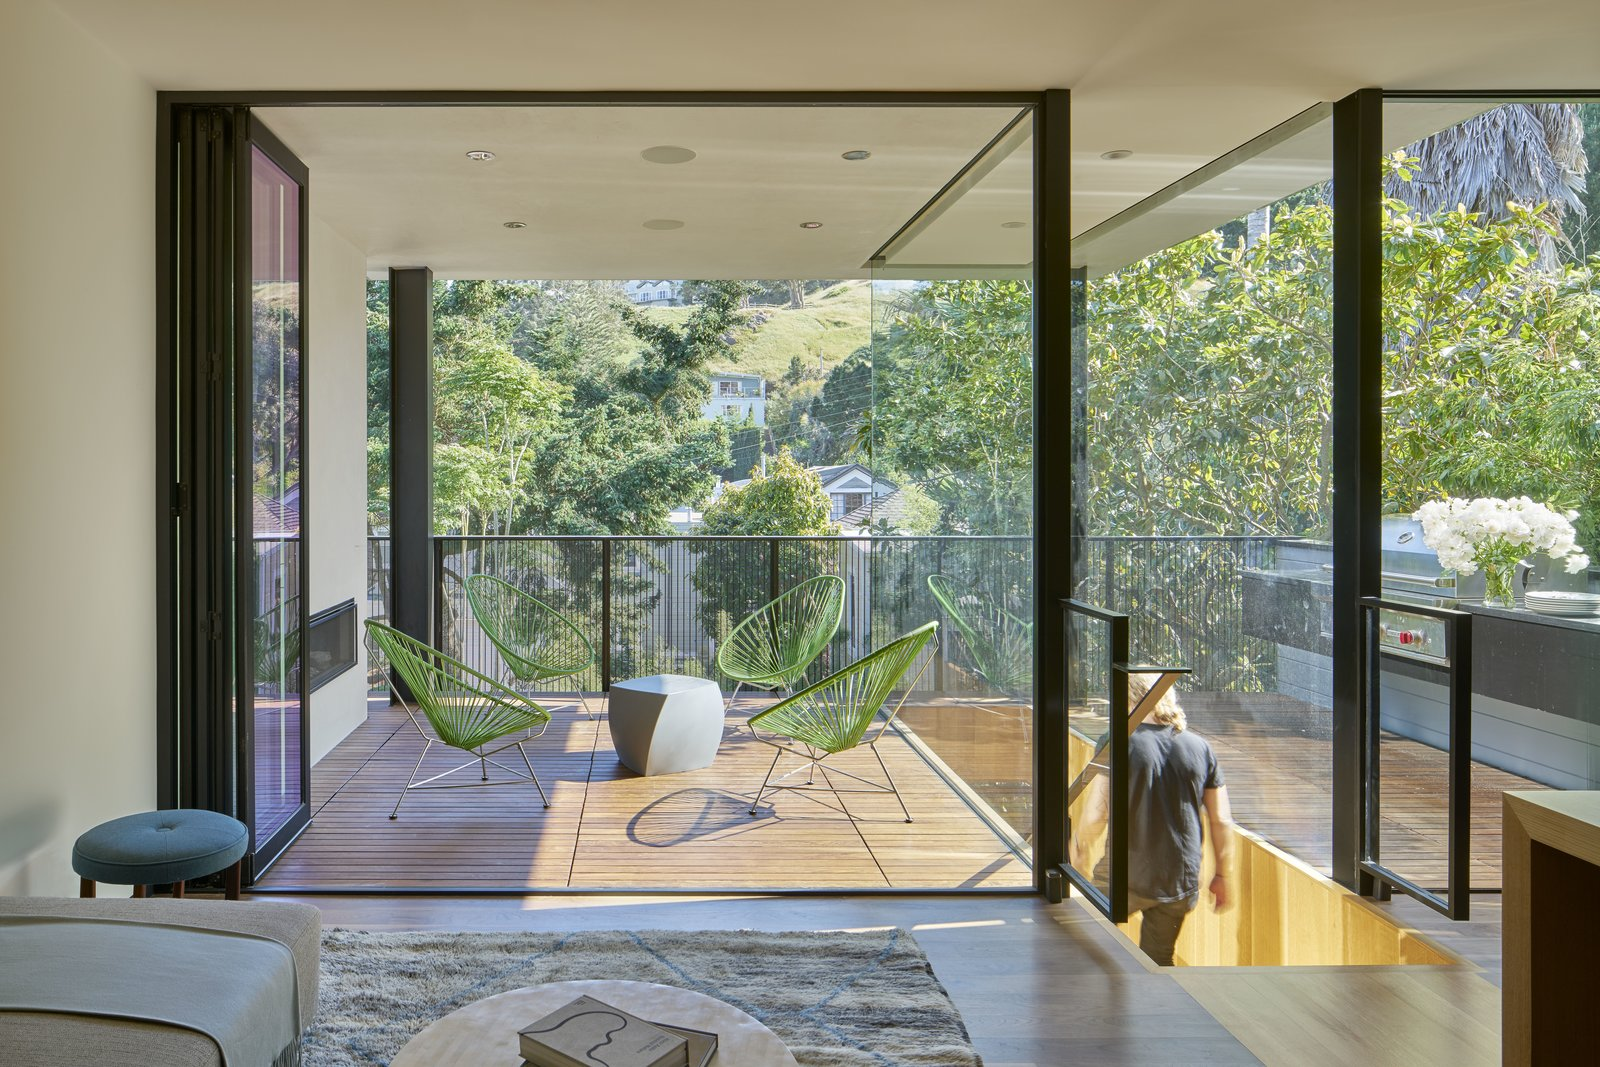 Outdoor, Wood Patio, Porch, Deck, and Metal Fences, Wall  29th Street Residence by Schwartz and Architecture